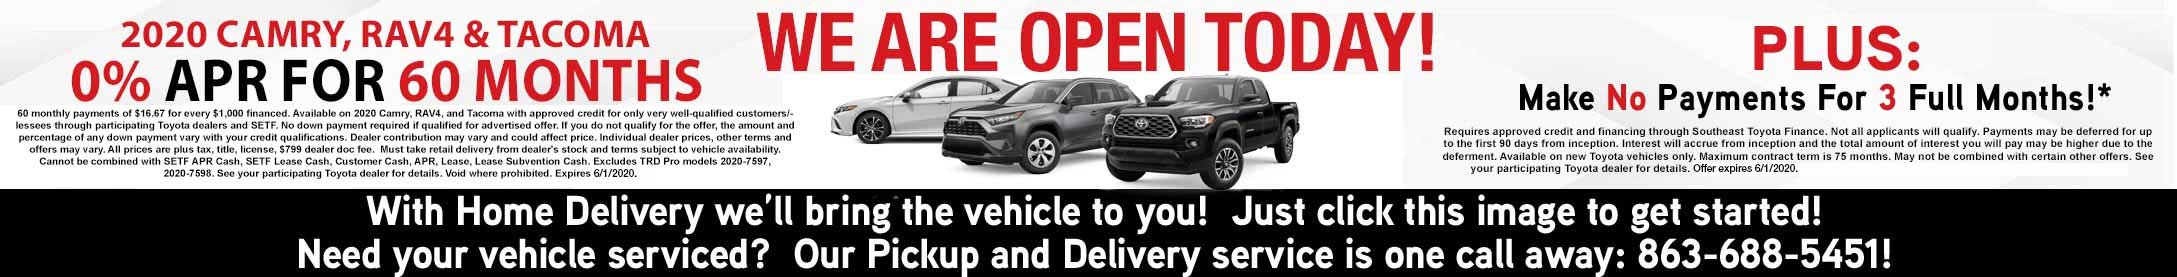 We are open today! Click here to go to showroom